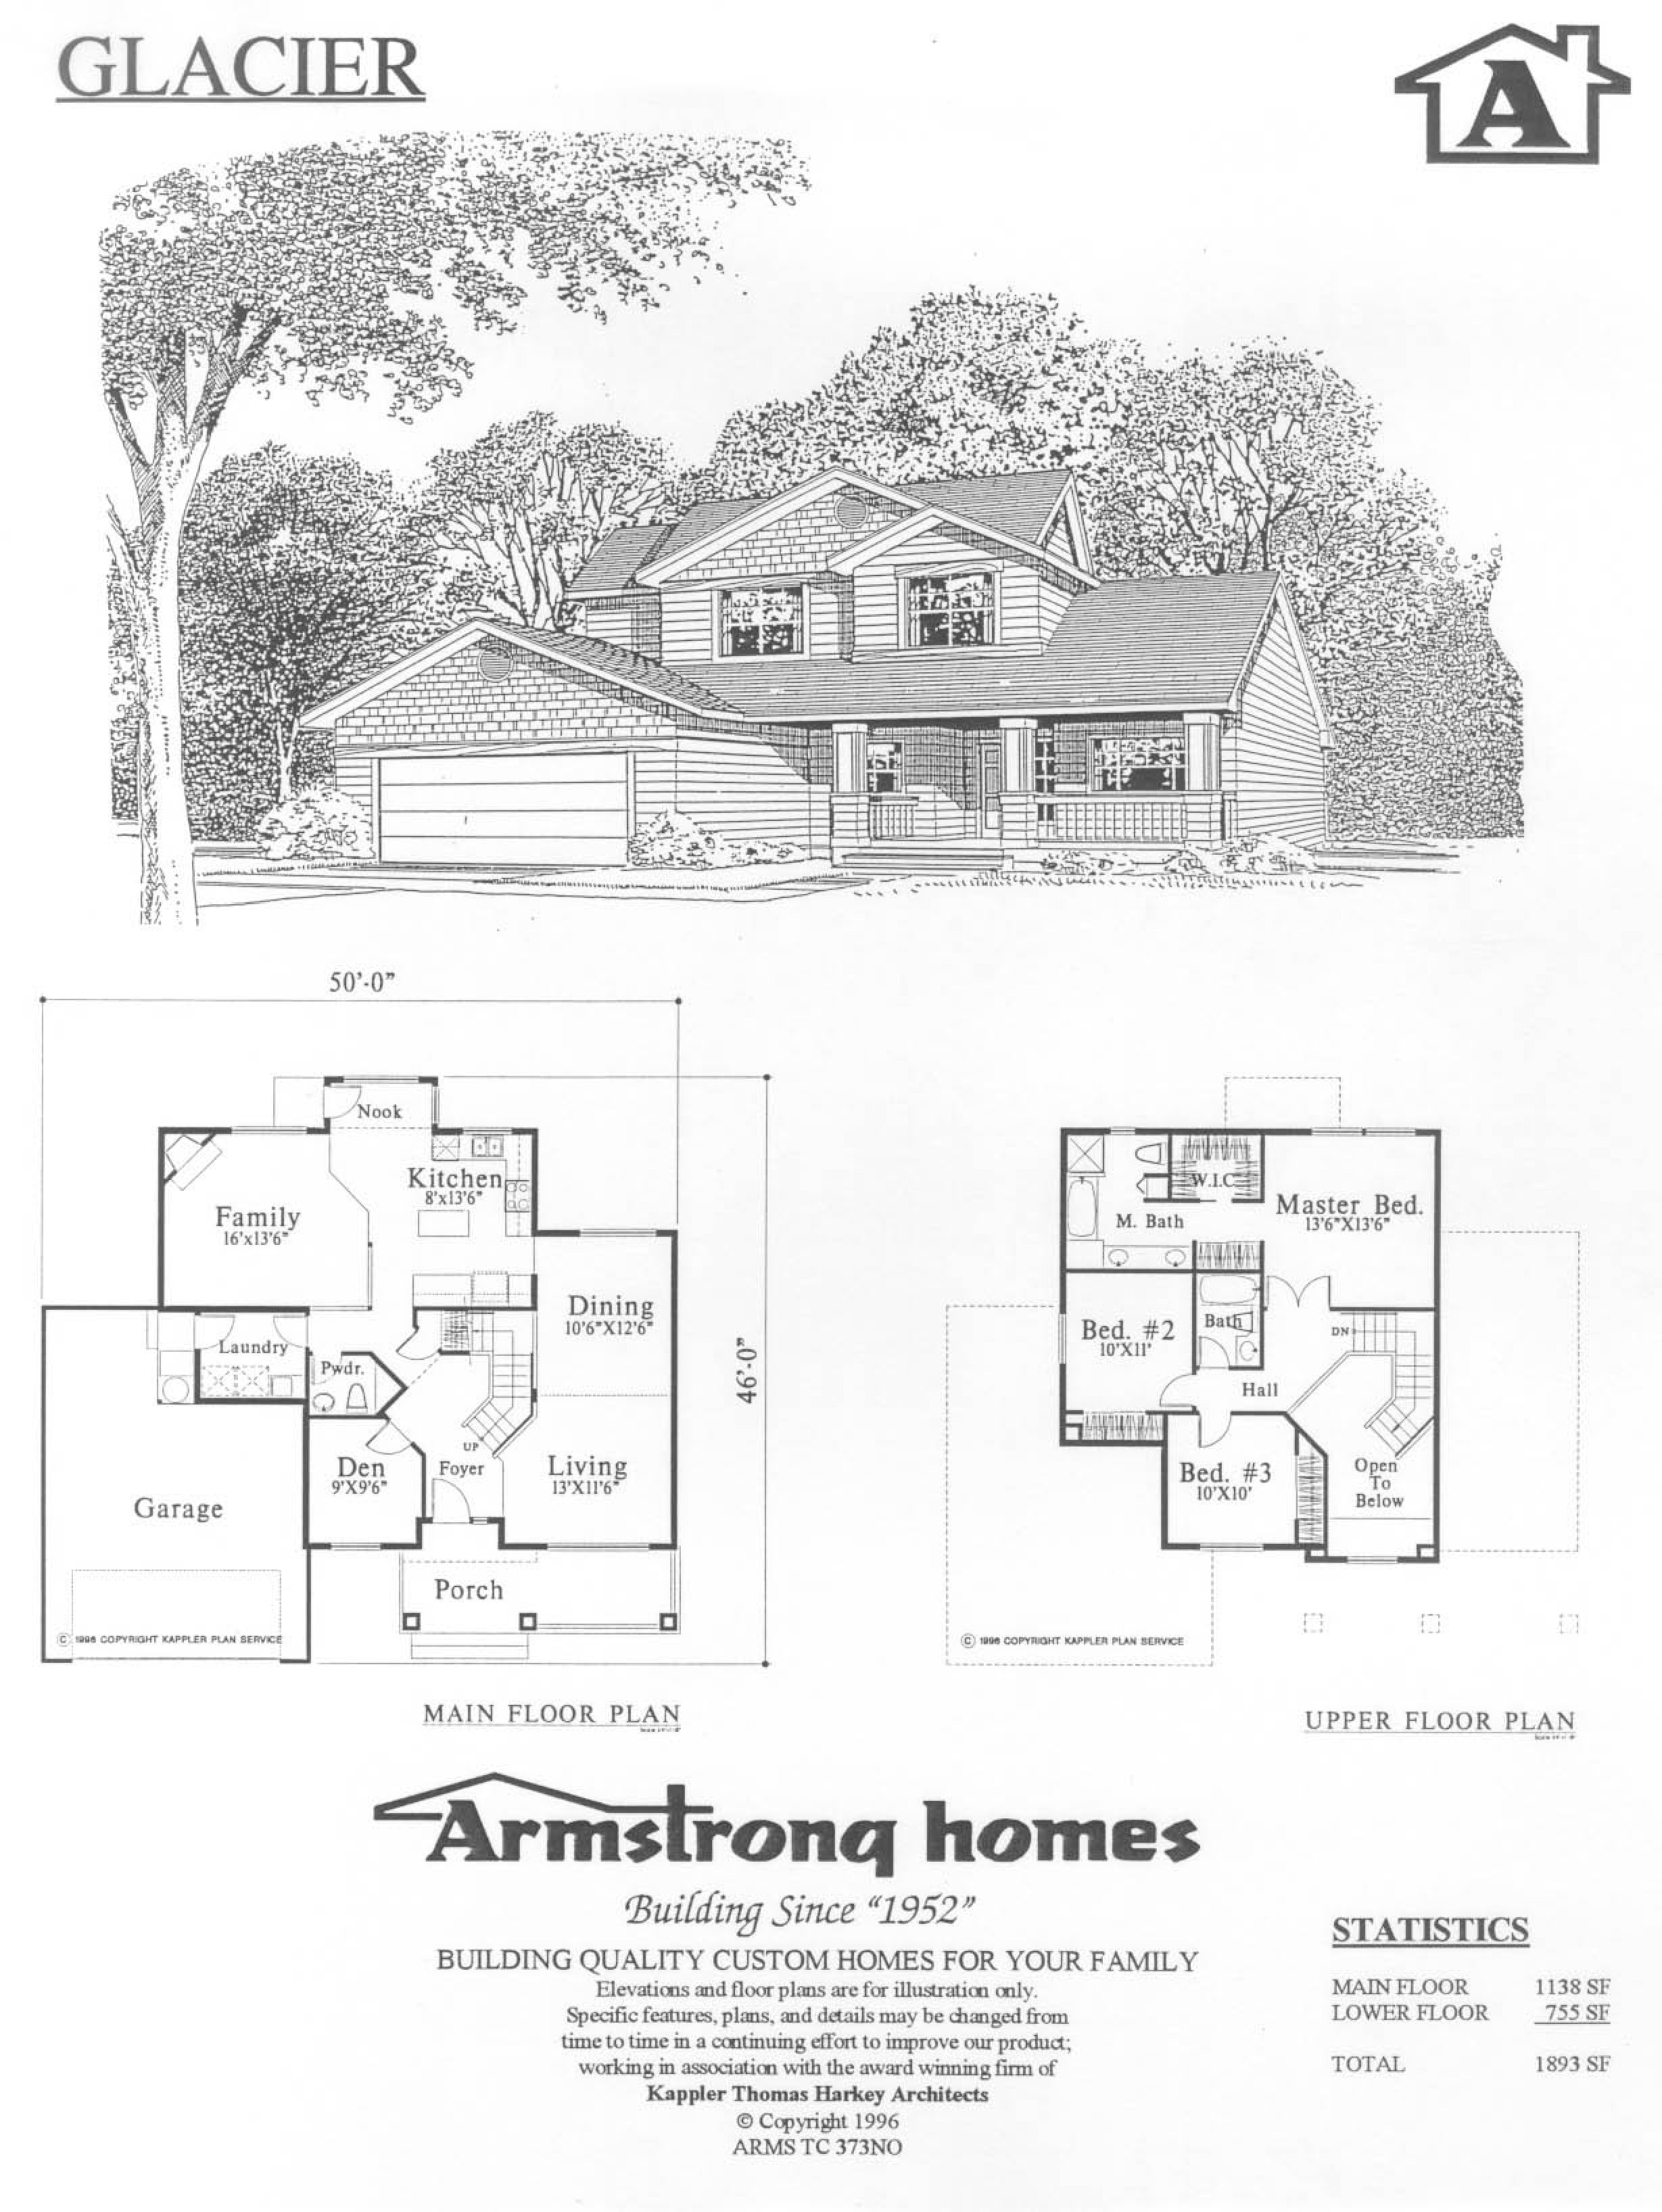 Armstrong homes ocala floor plans avie home for Armstrong homes floor plans